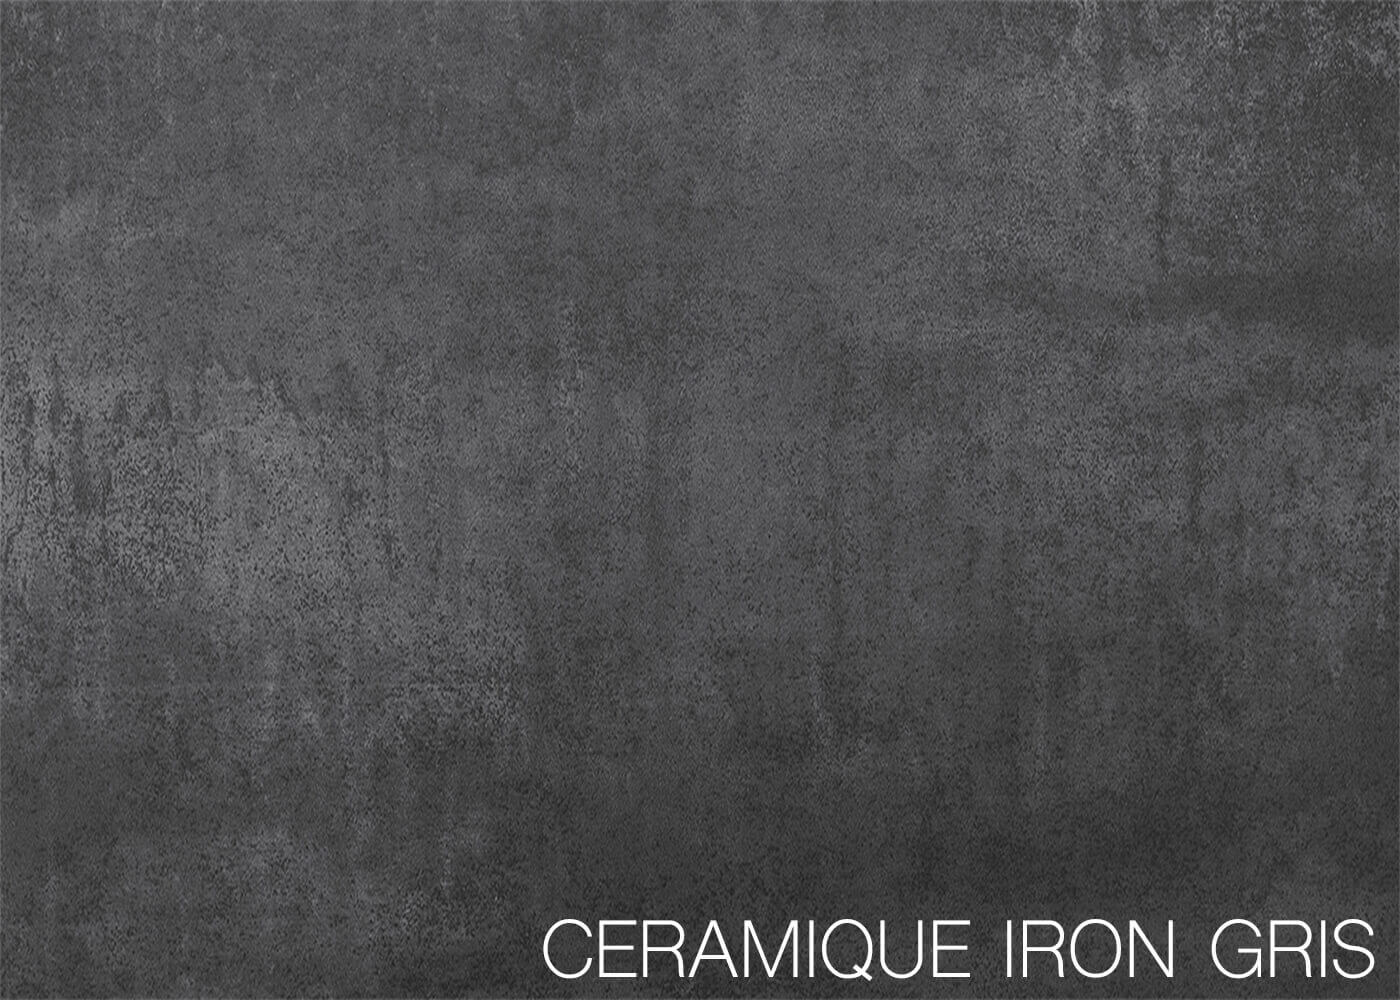 CERAMIQUE IRON GREY